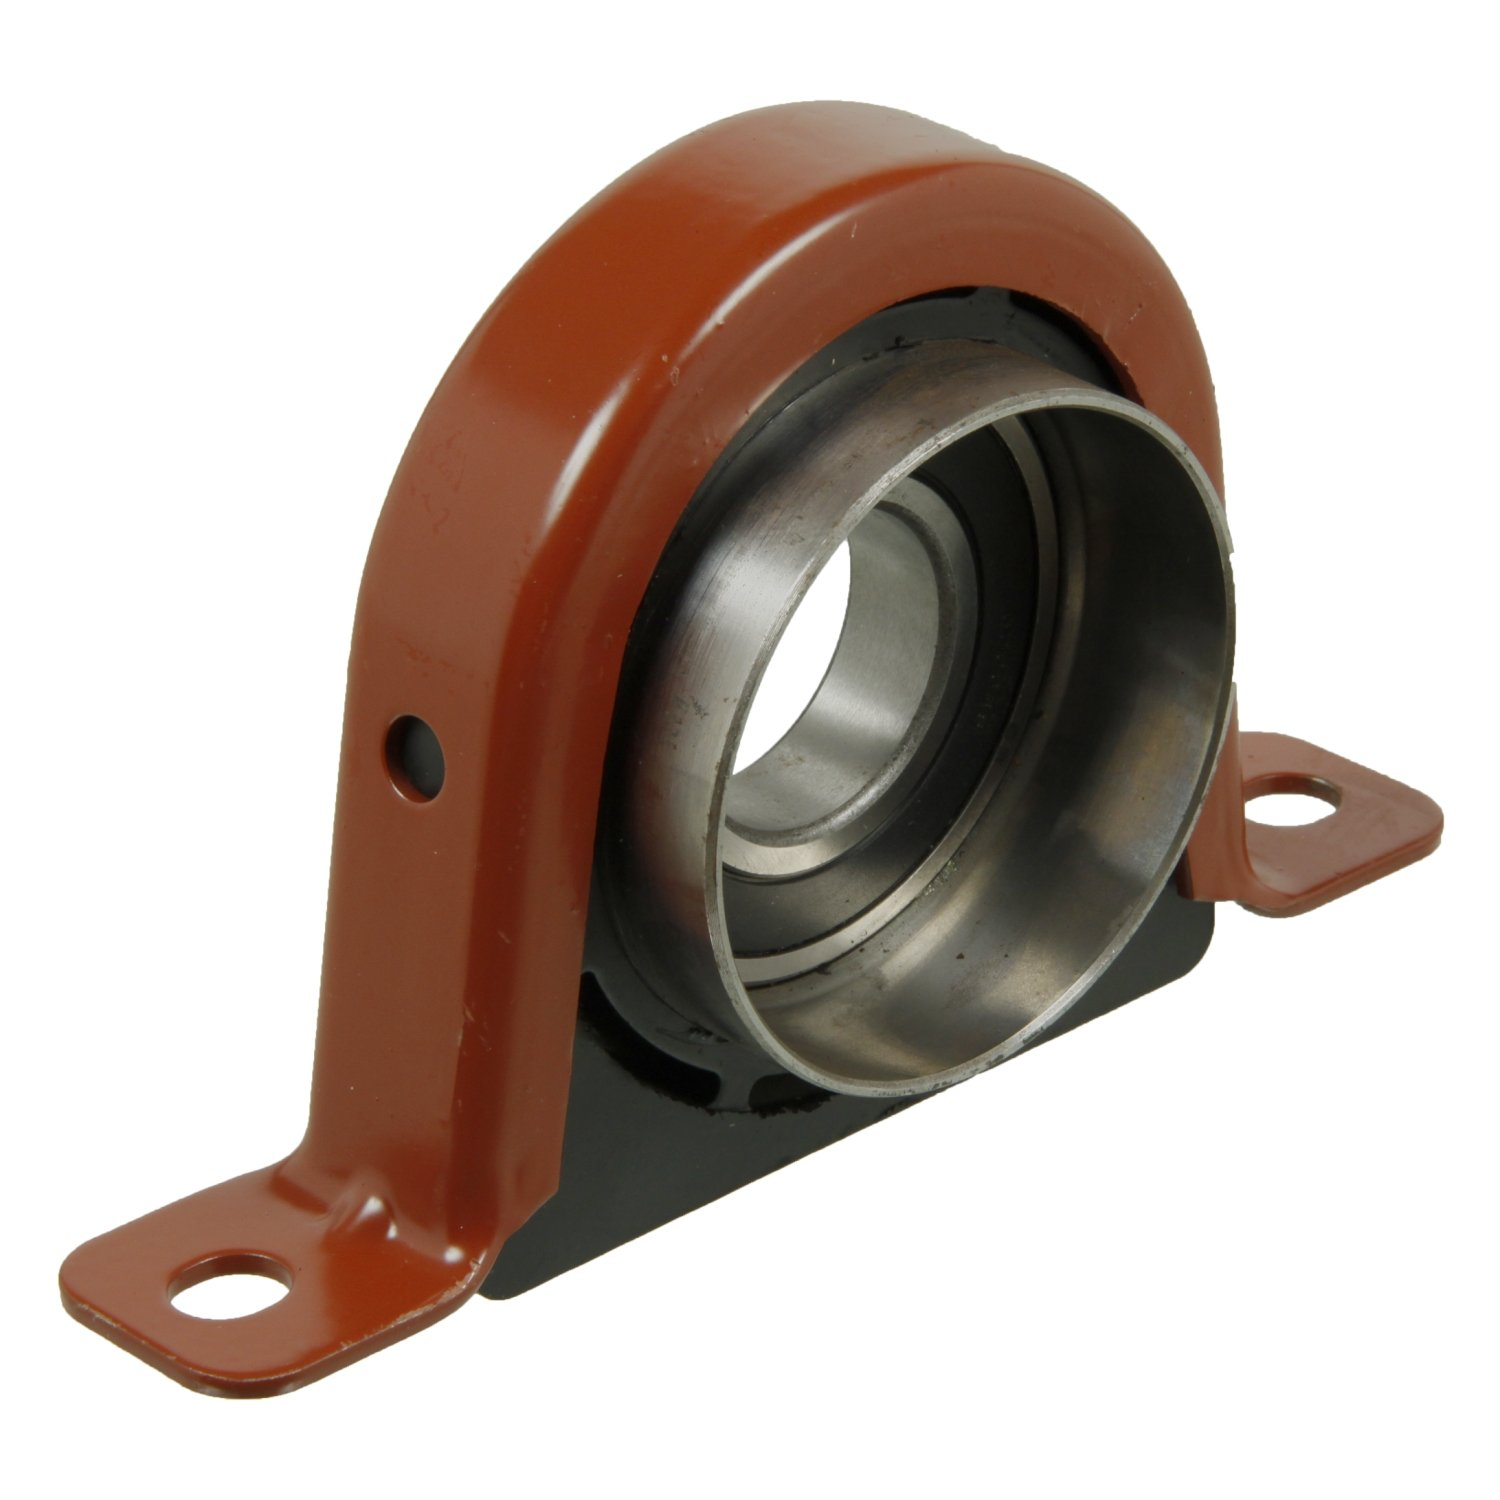 pack of one febi bilstein 38081 Propshaft Centre Support with integrated roller bearing